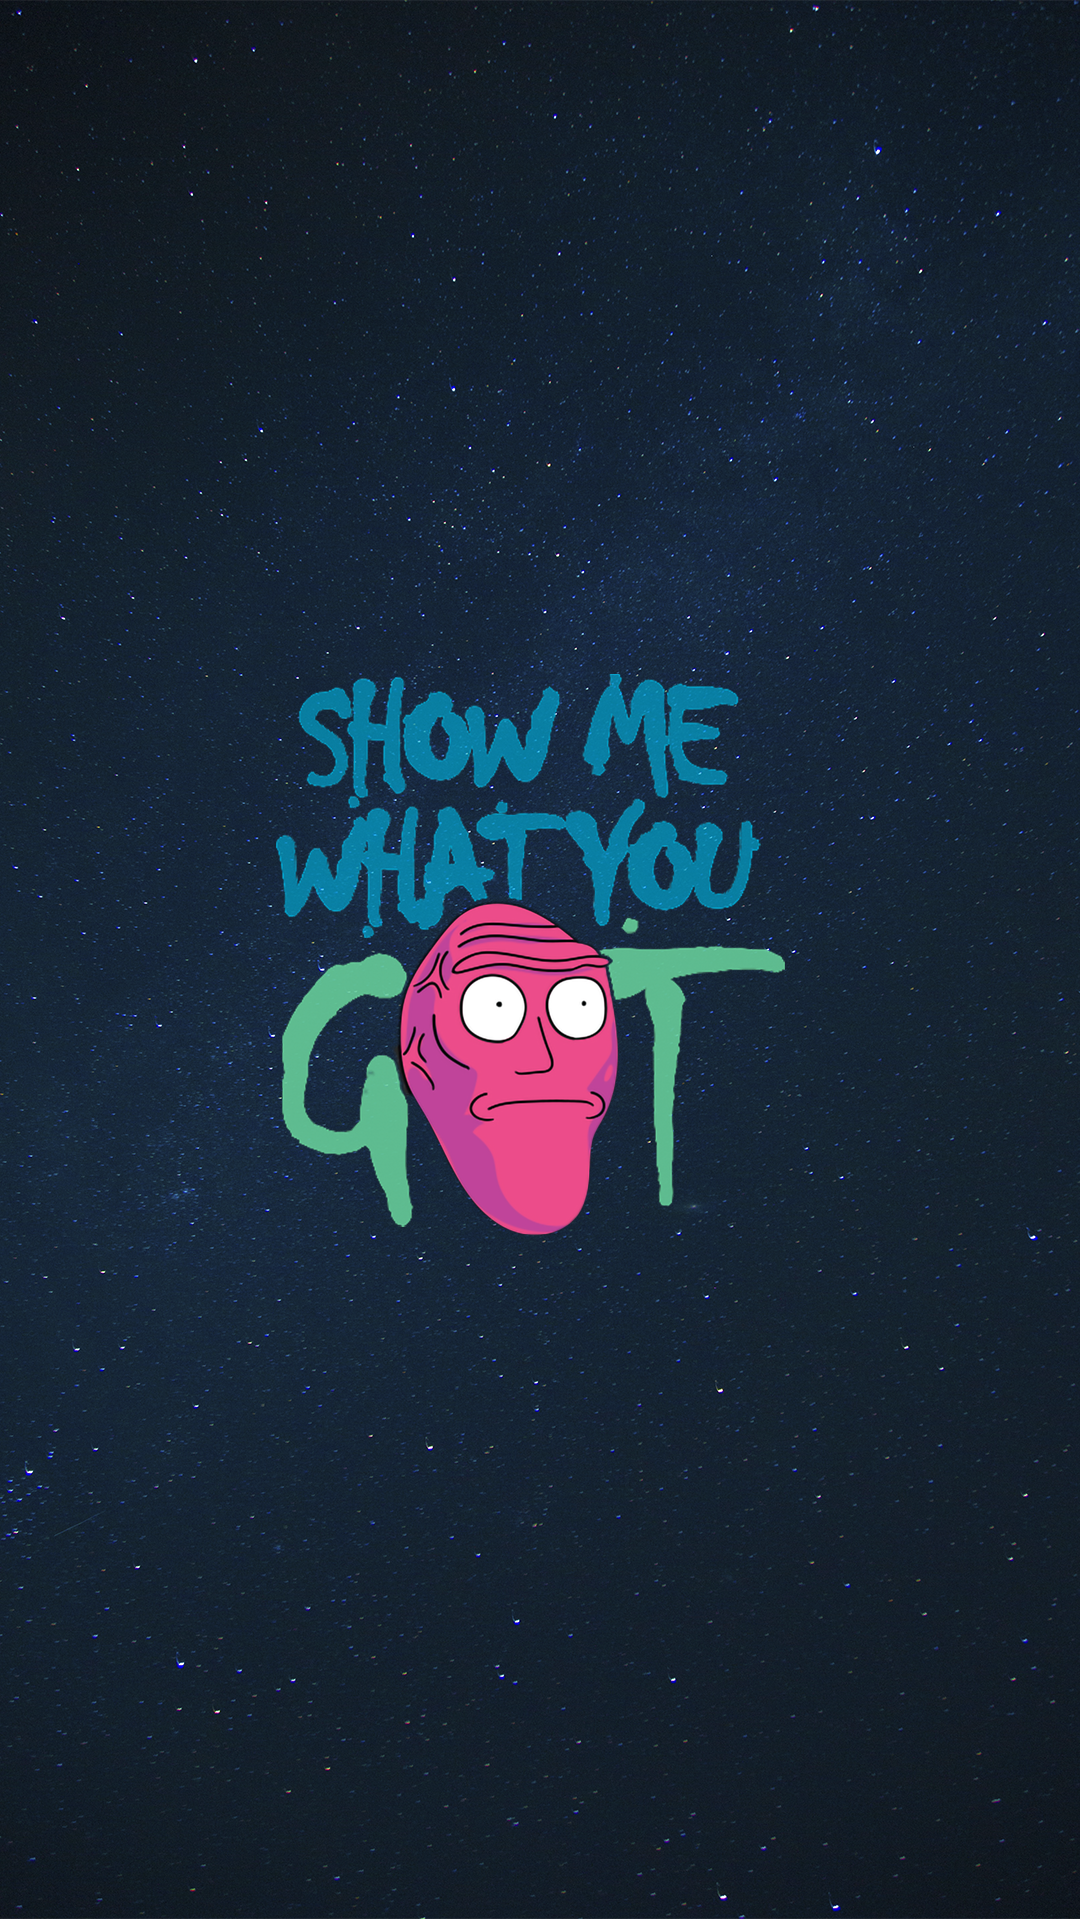 Smartphone Rick And Morty Wallpapers - Wallpaper Cave